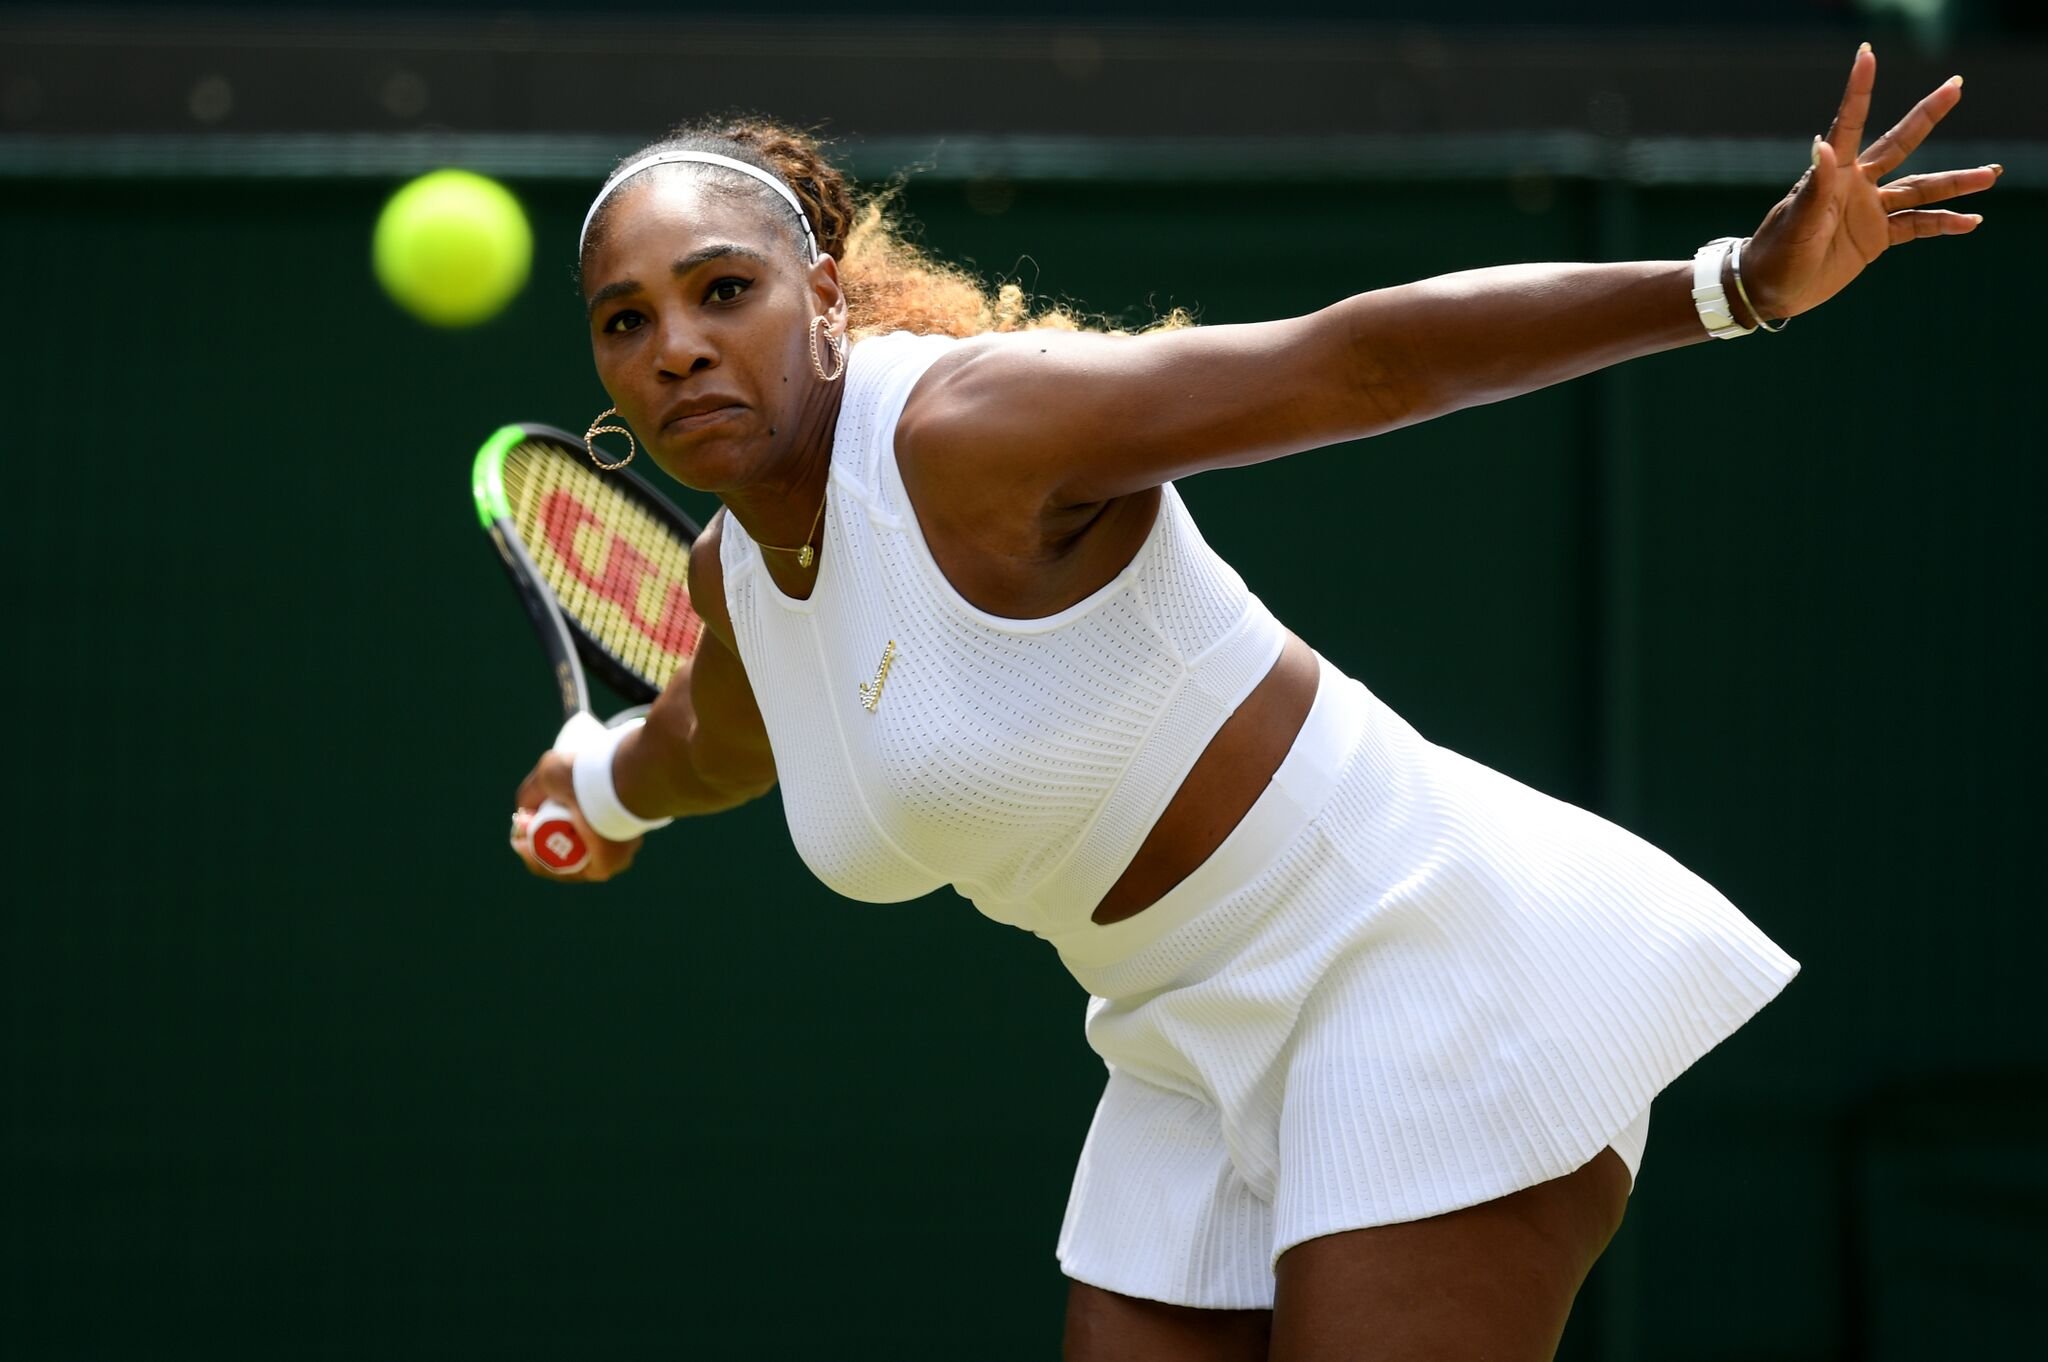 Serena Williams of the United States plays a forehand in her Ladies' Singles fourth round match against Carla Suarez Navarro of Spain during Day Seven of The Championships  | Getty Images